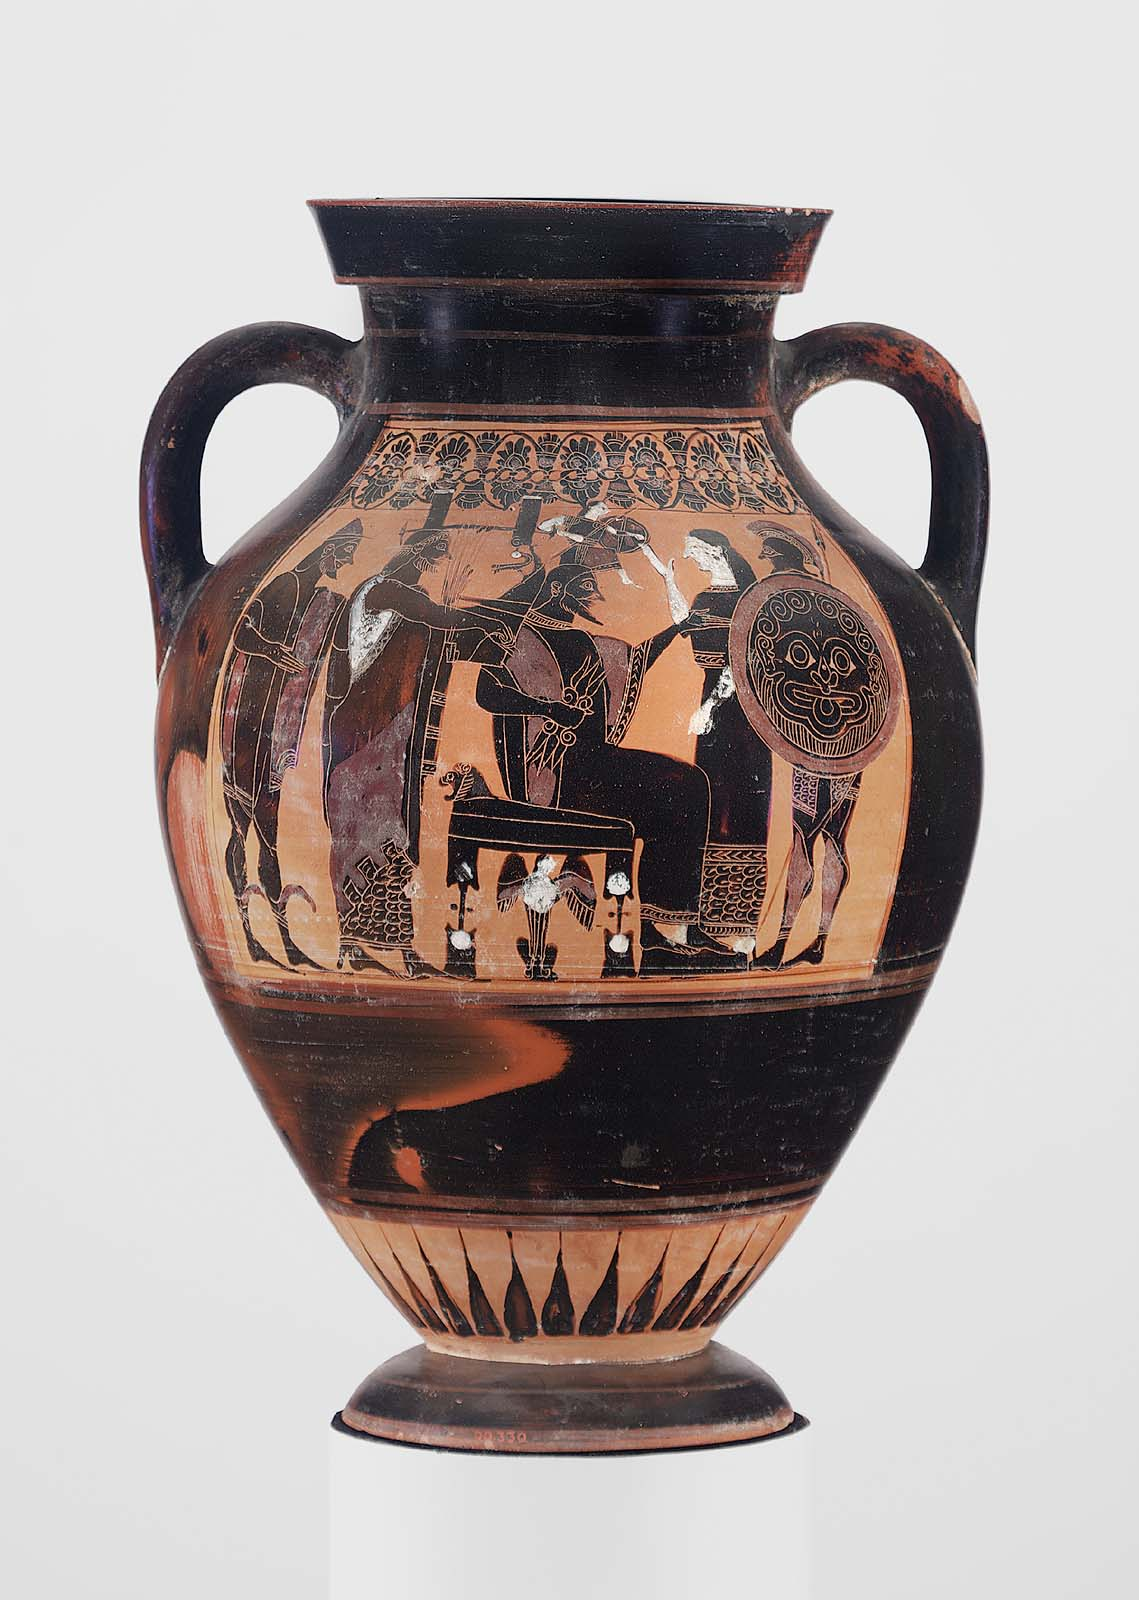 Twohandled jar amphora depicting the birth of Athena